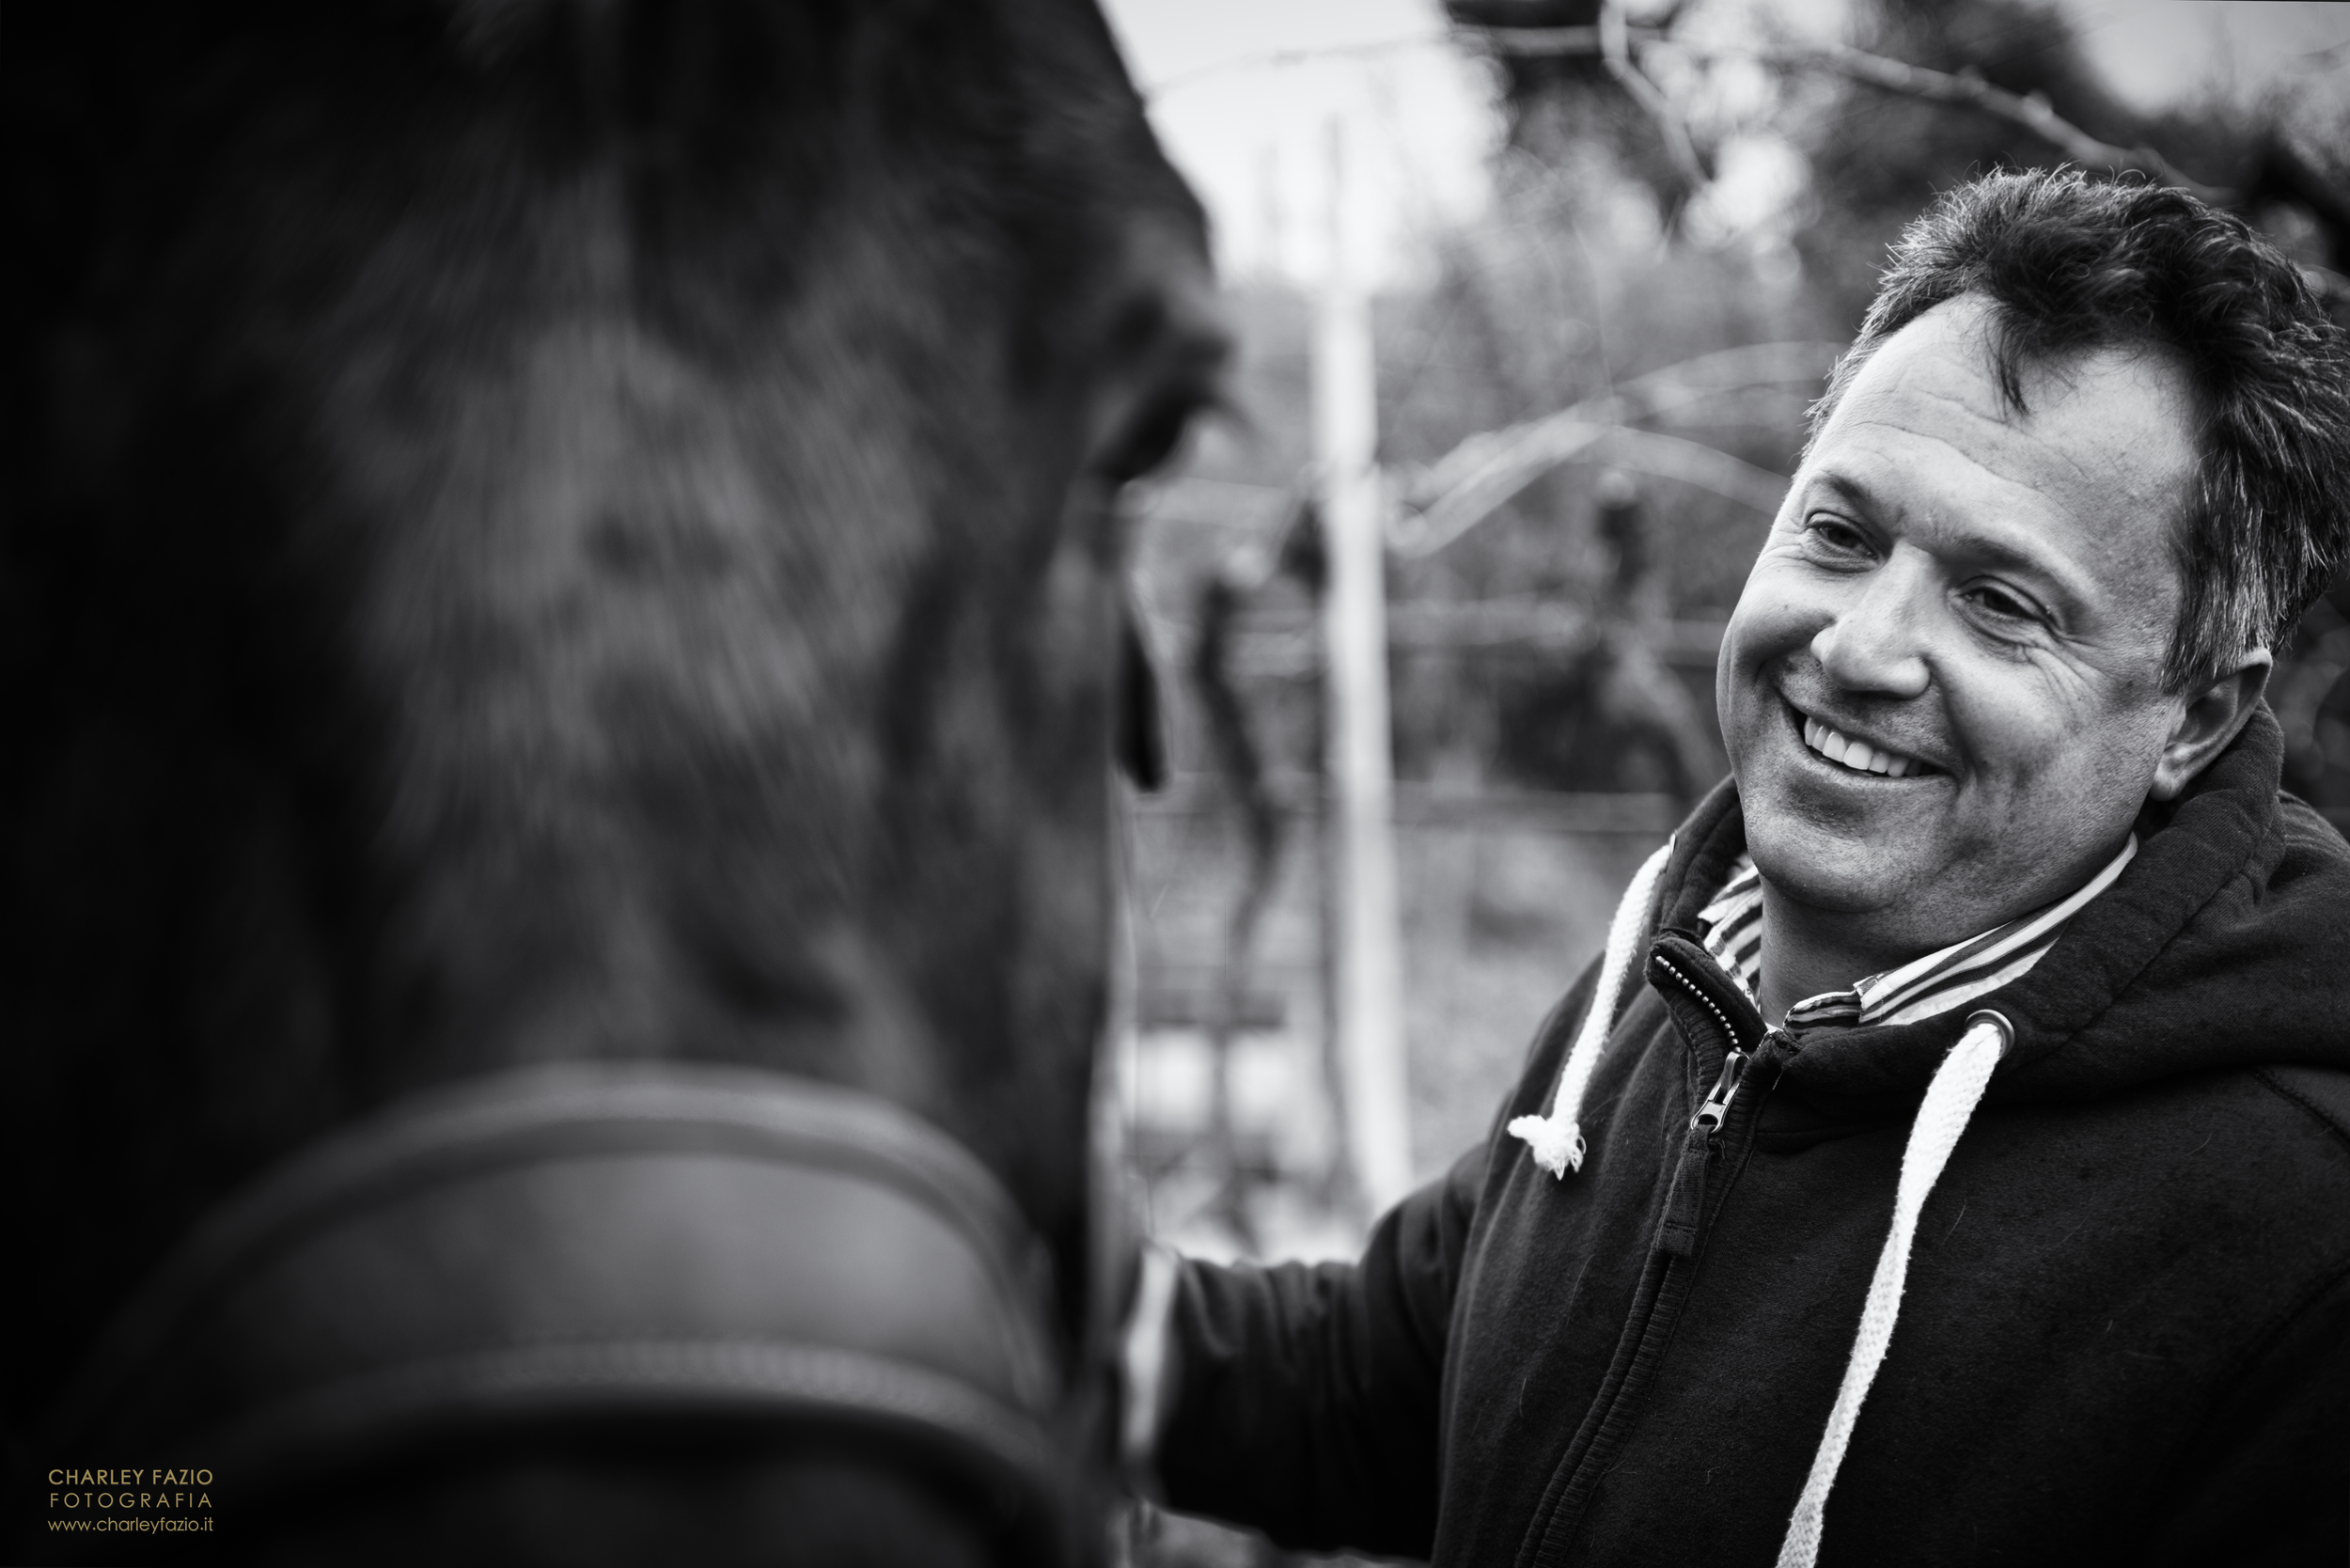 Alberto with one of his beloved horses